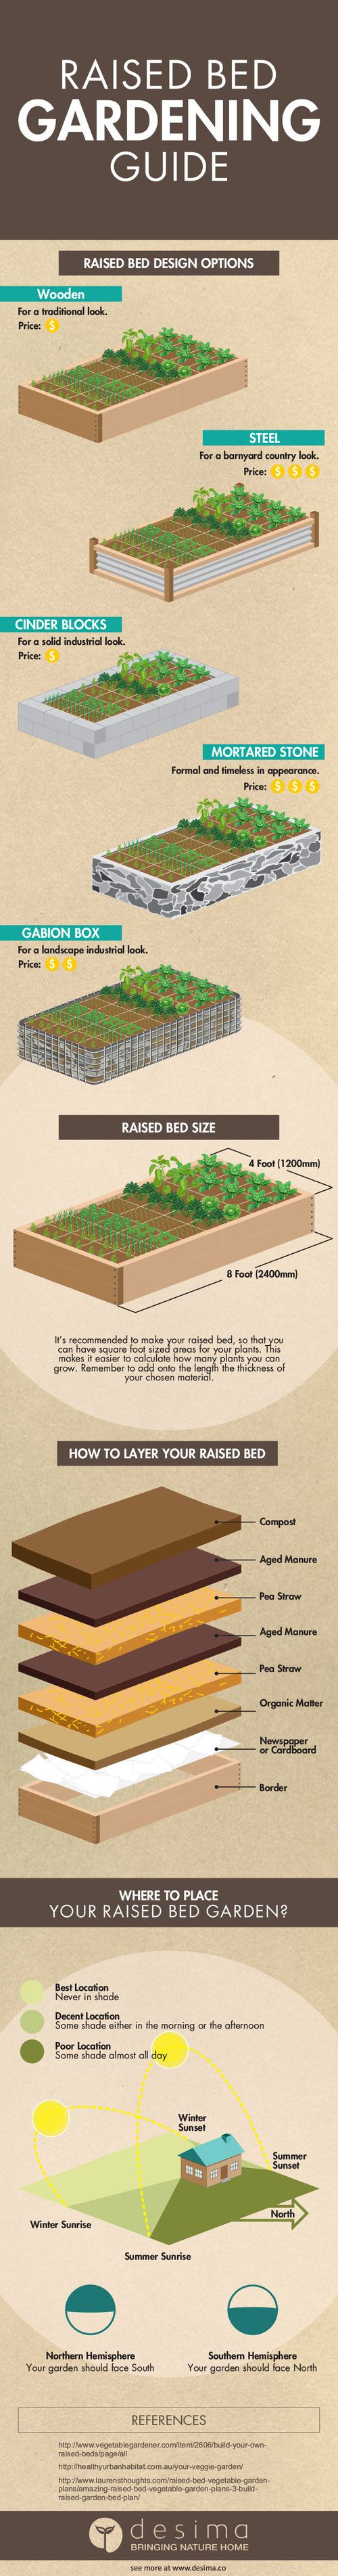 best tomato images on pinterest growing tomatoes tomatoes and